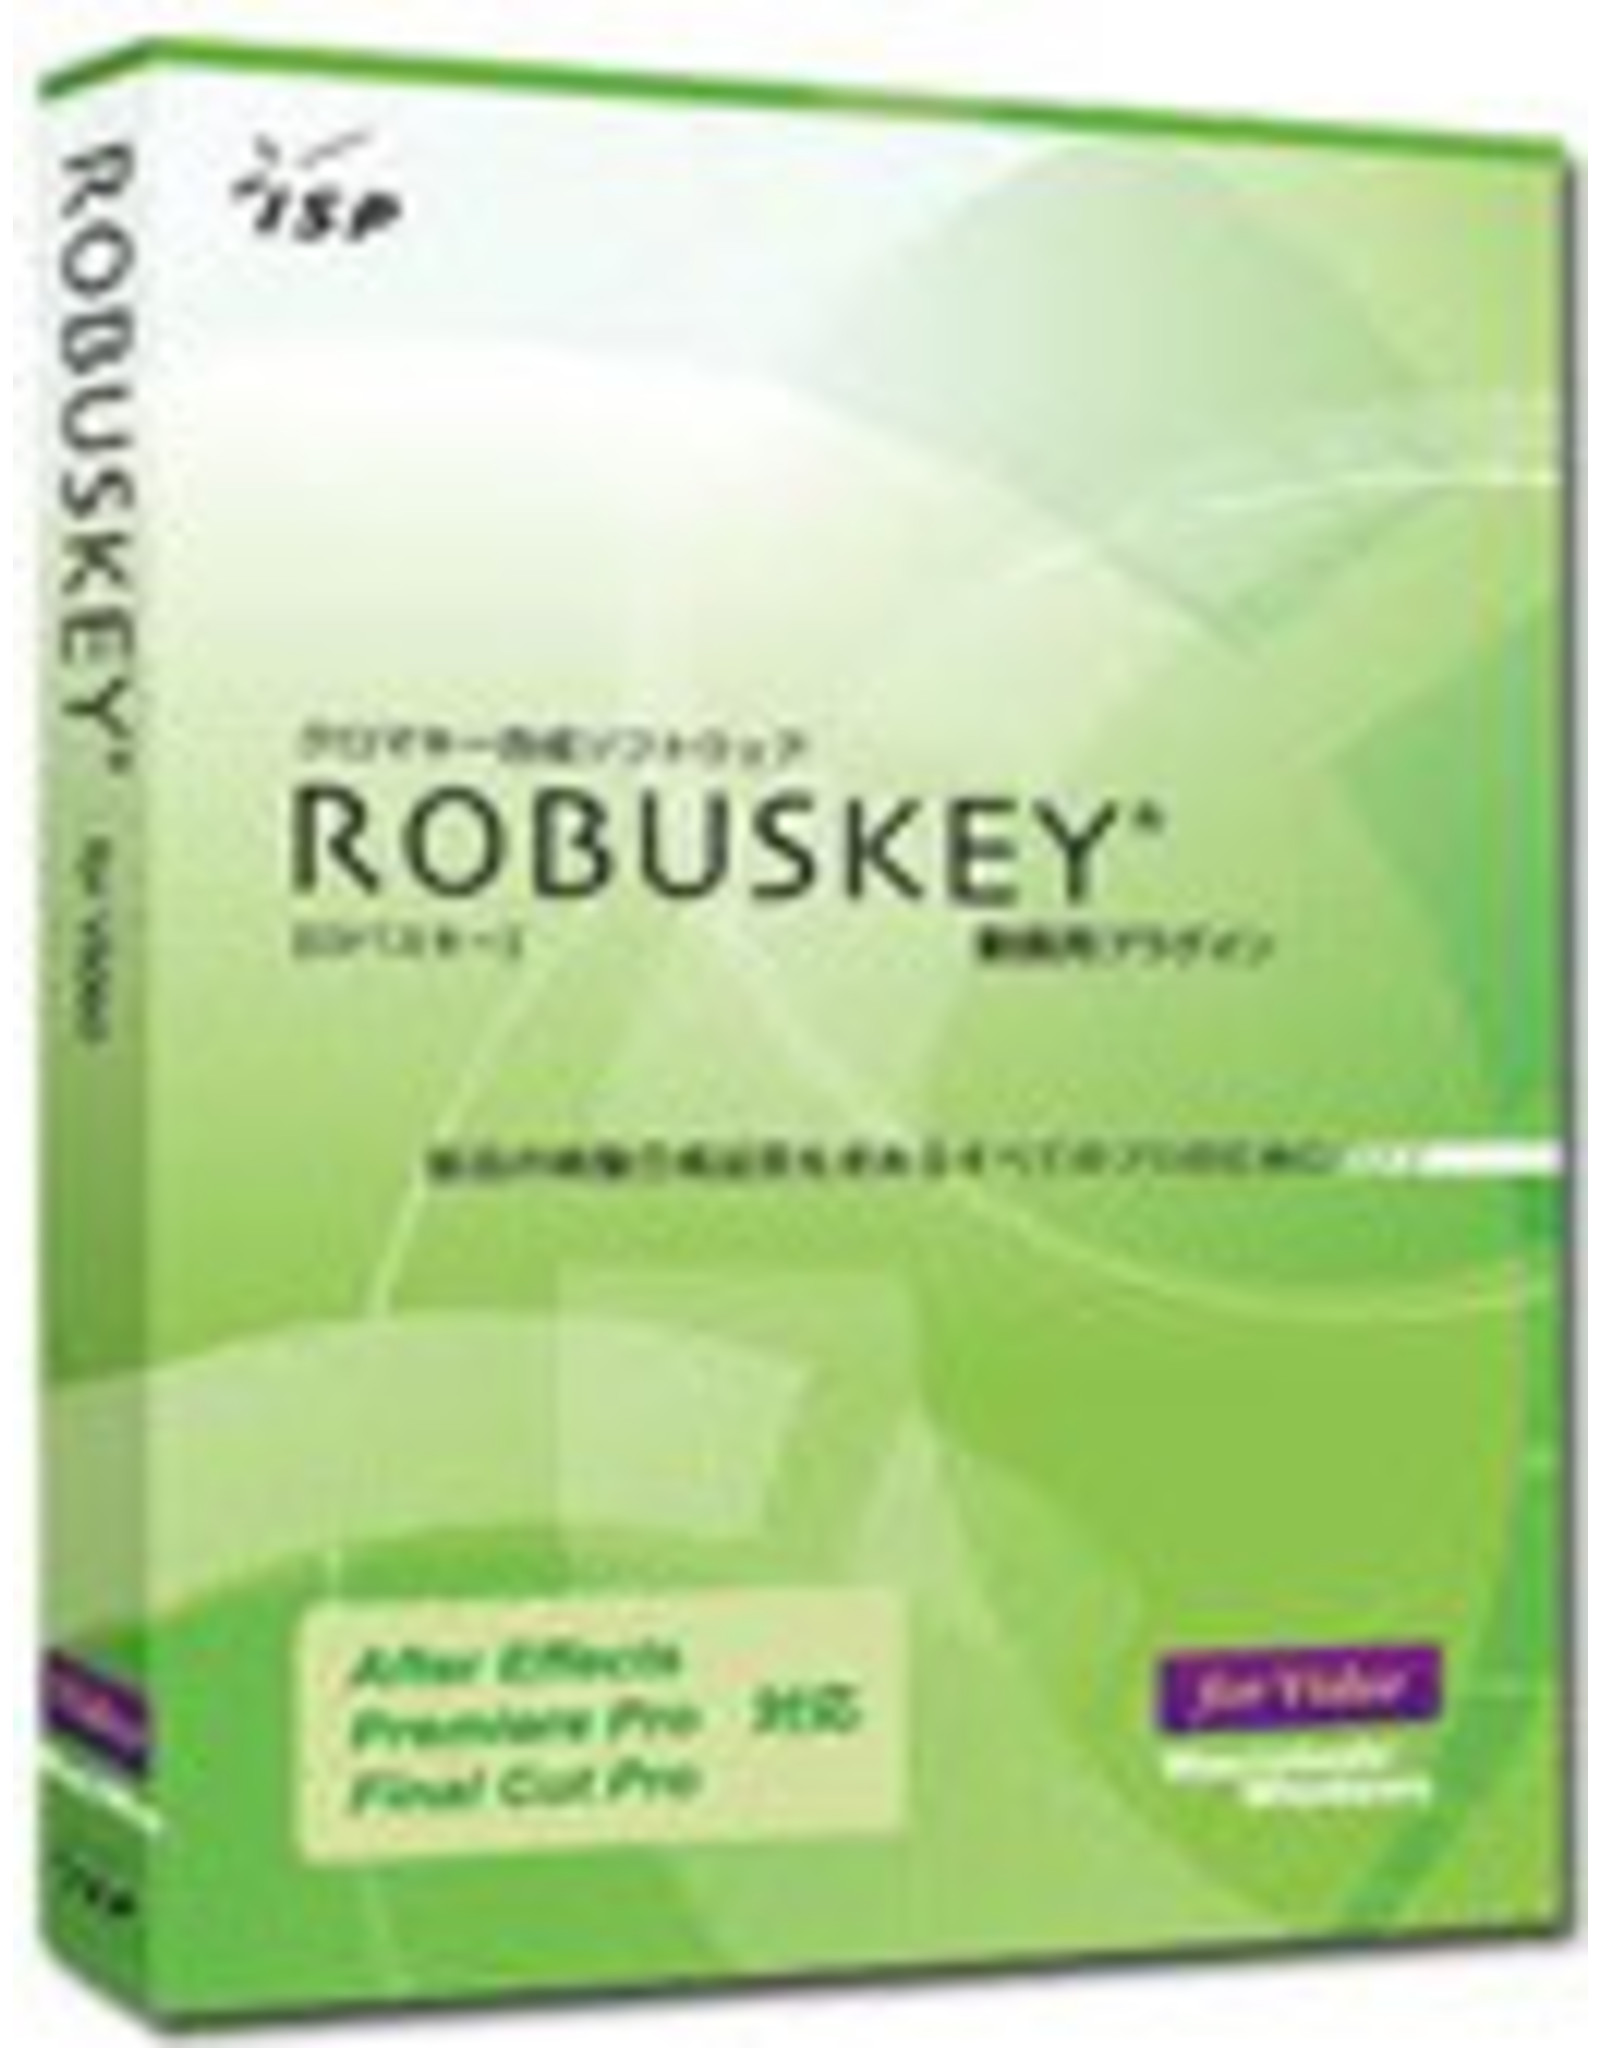 ROBUSKEY for Video software plug-in for EDIUS 9